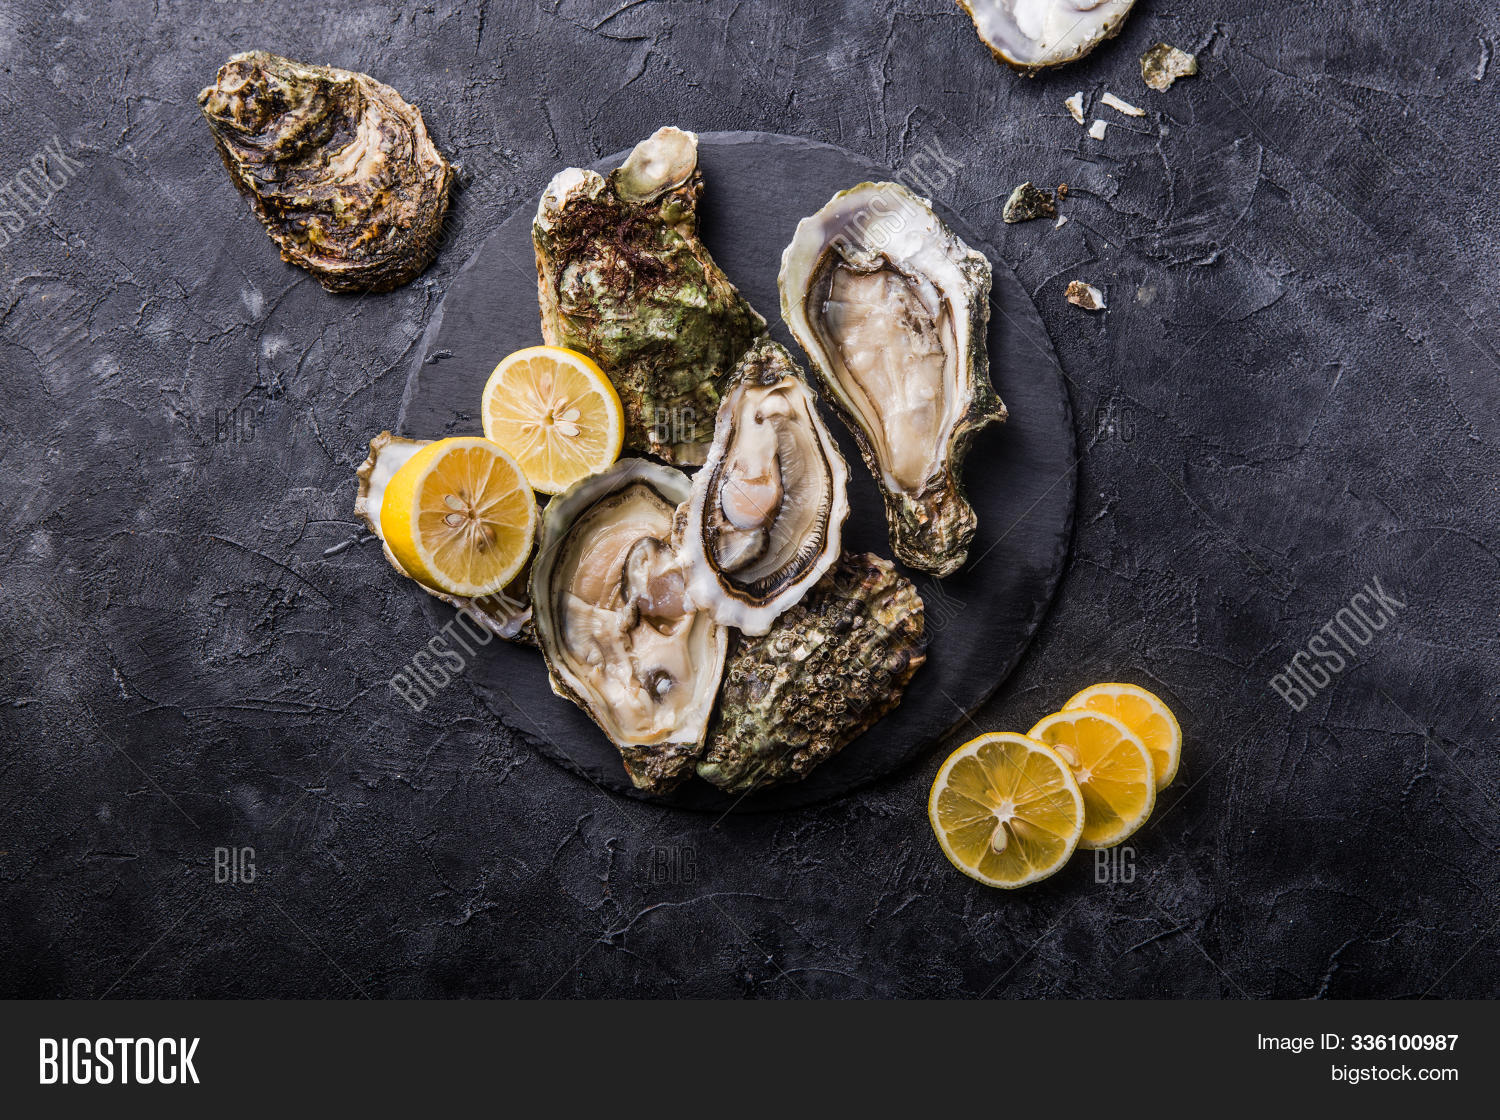 Fresh Open Oysters Image Photo Free Trial Bigstock